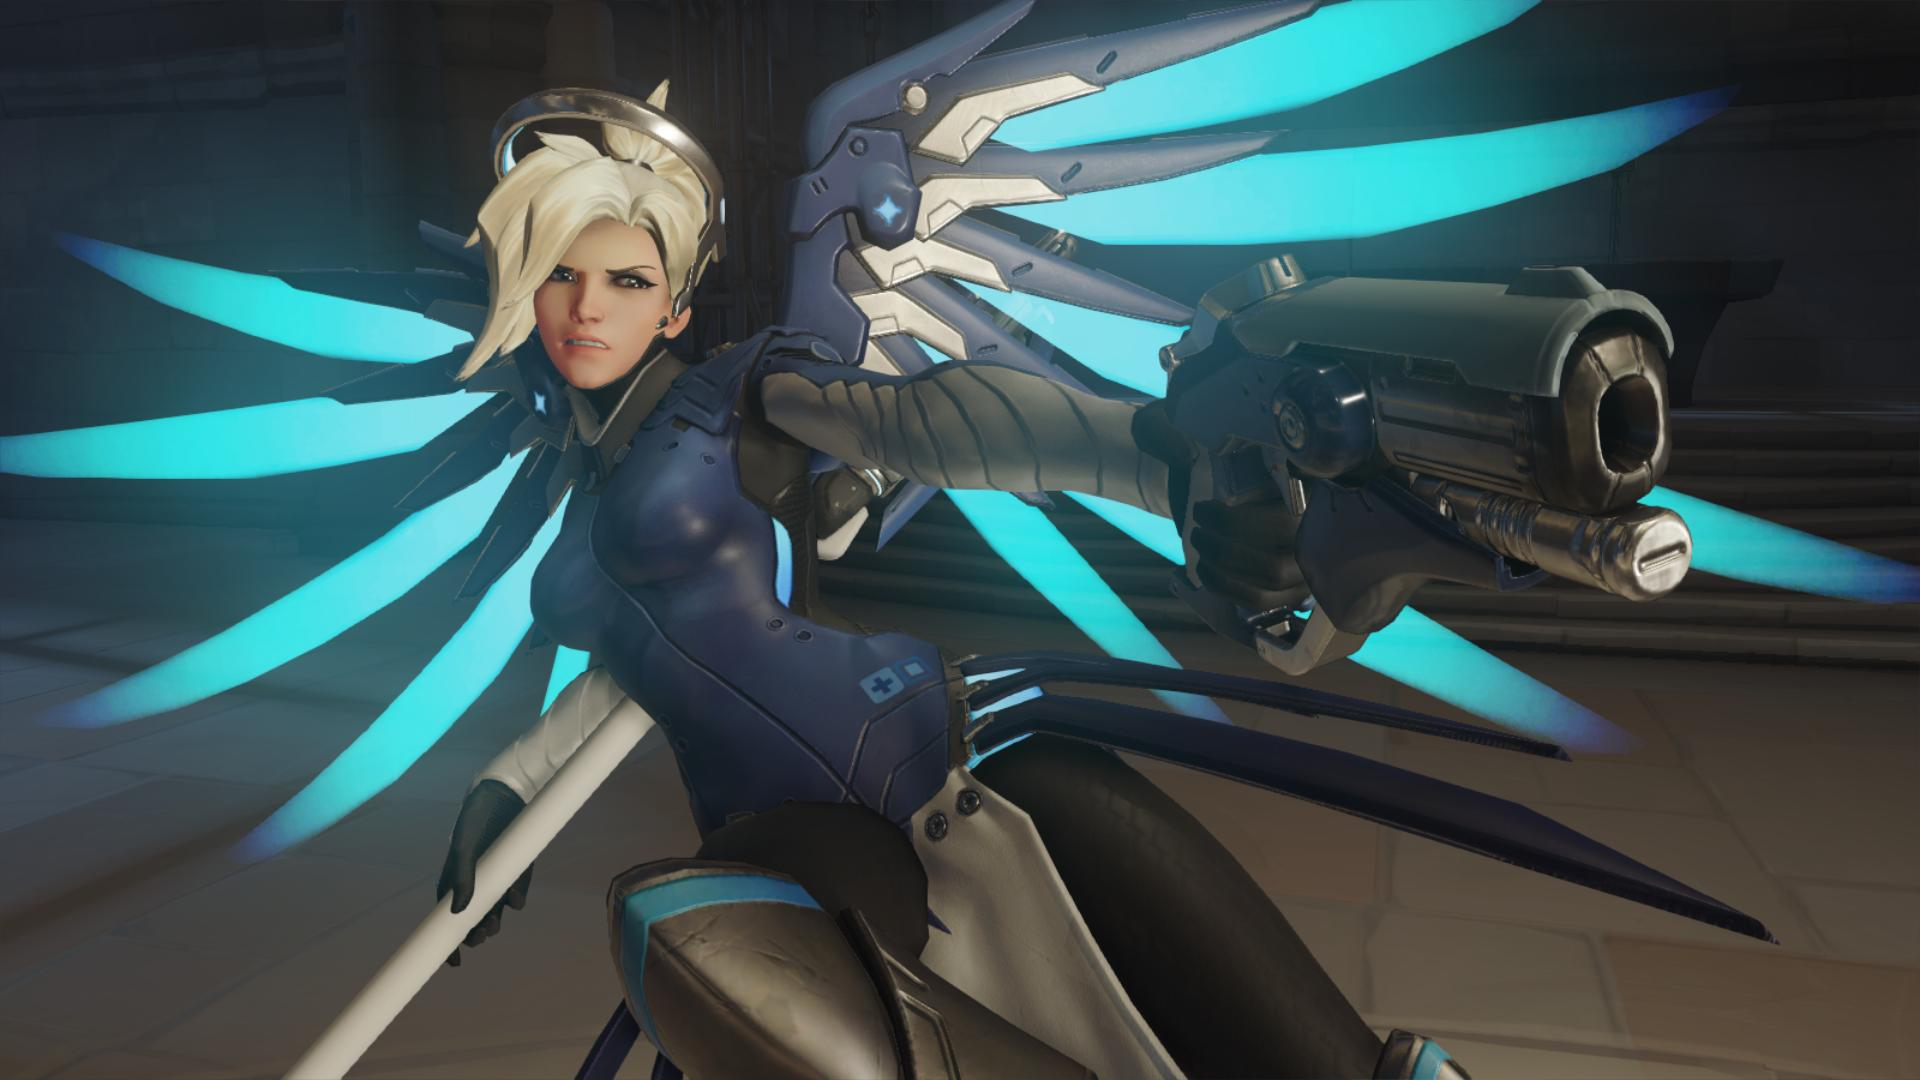 Overwatch : Mercy HQ wallpapers